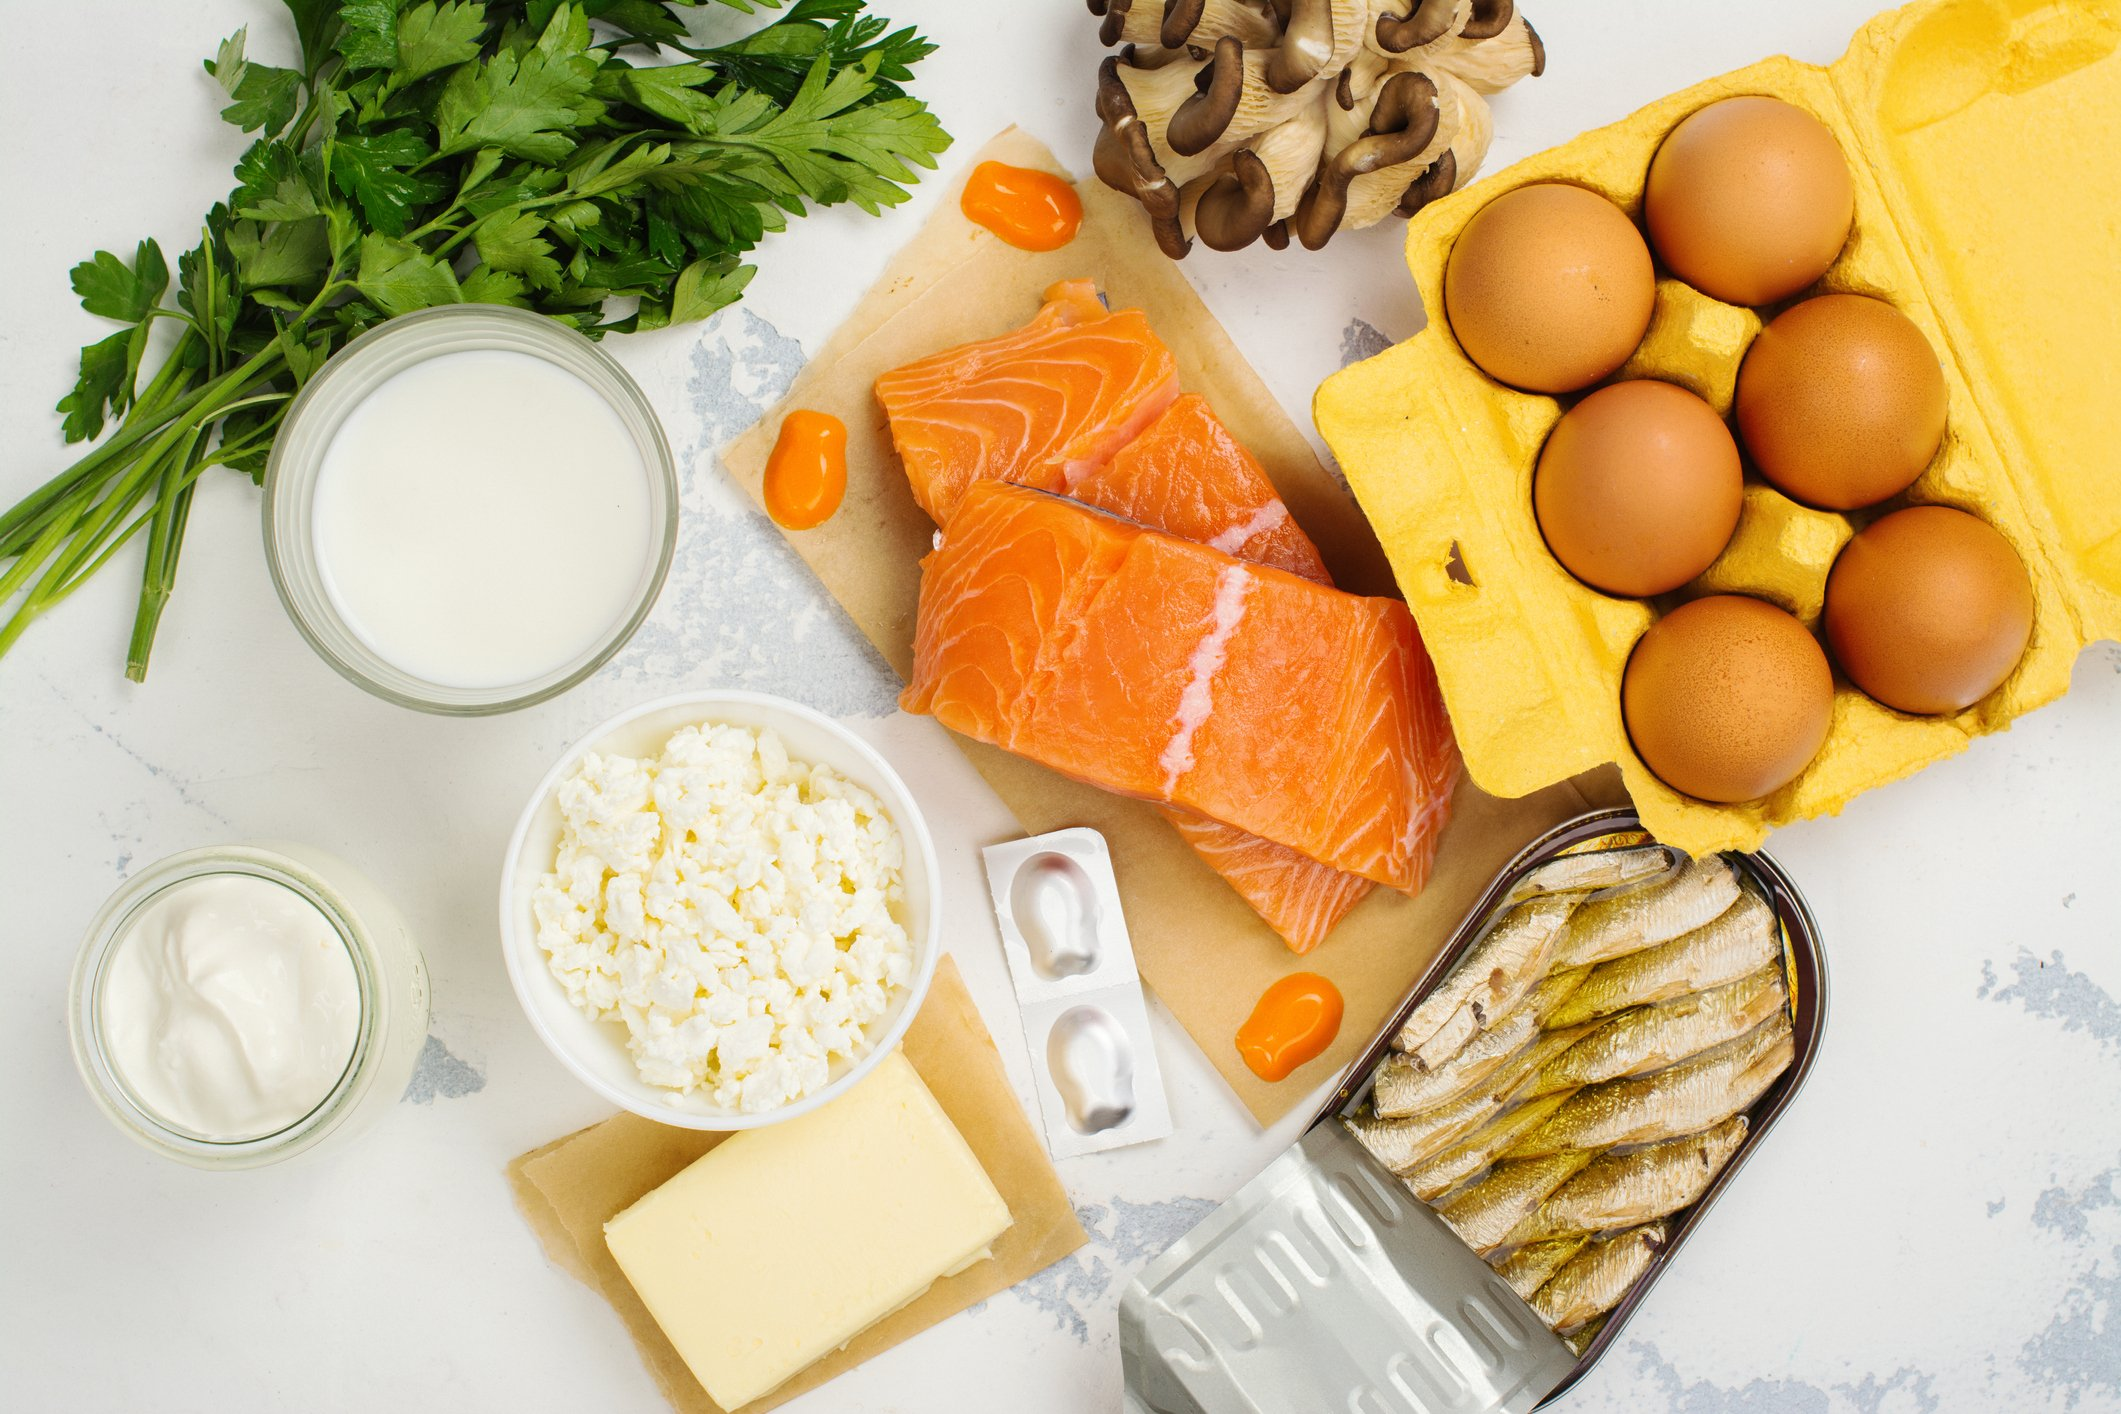 Natural sources of vitamin D include oily fish like salmon, dairy products and eggs. (iStock Photo)